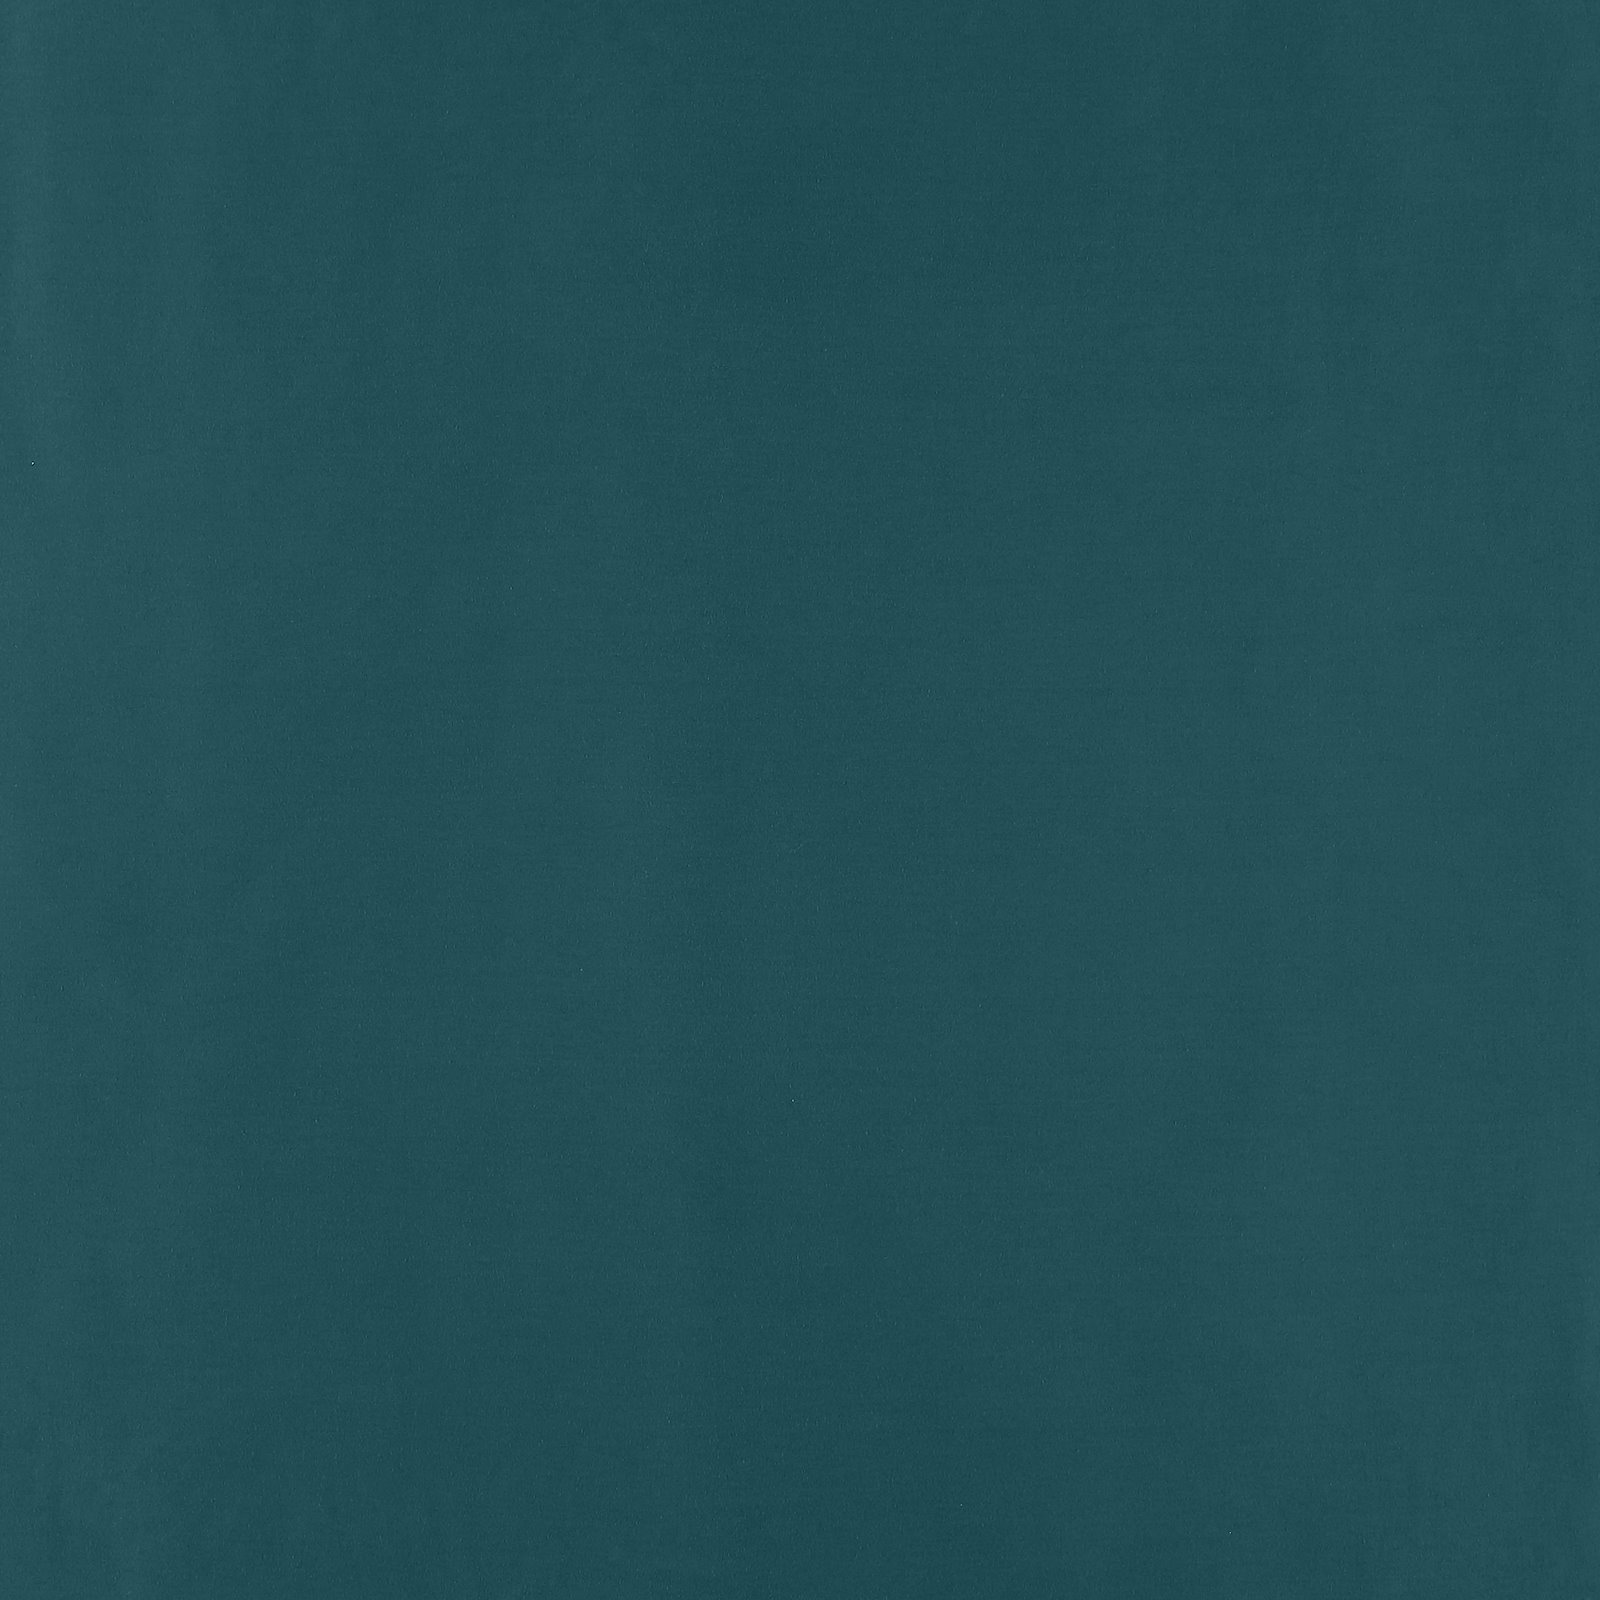 Viscose jersey petrol green 272787_pack_solid